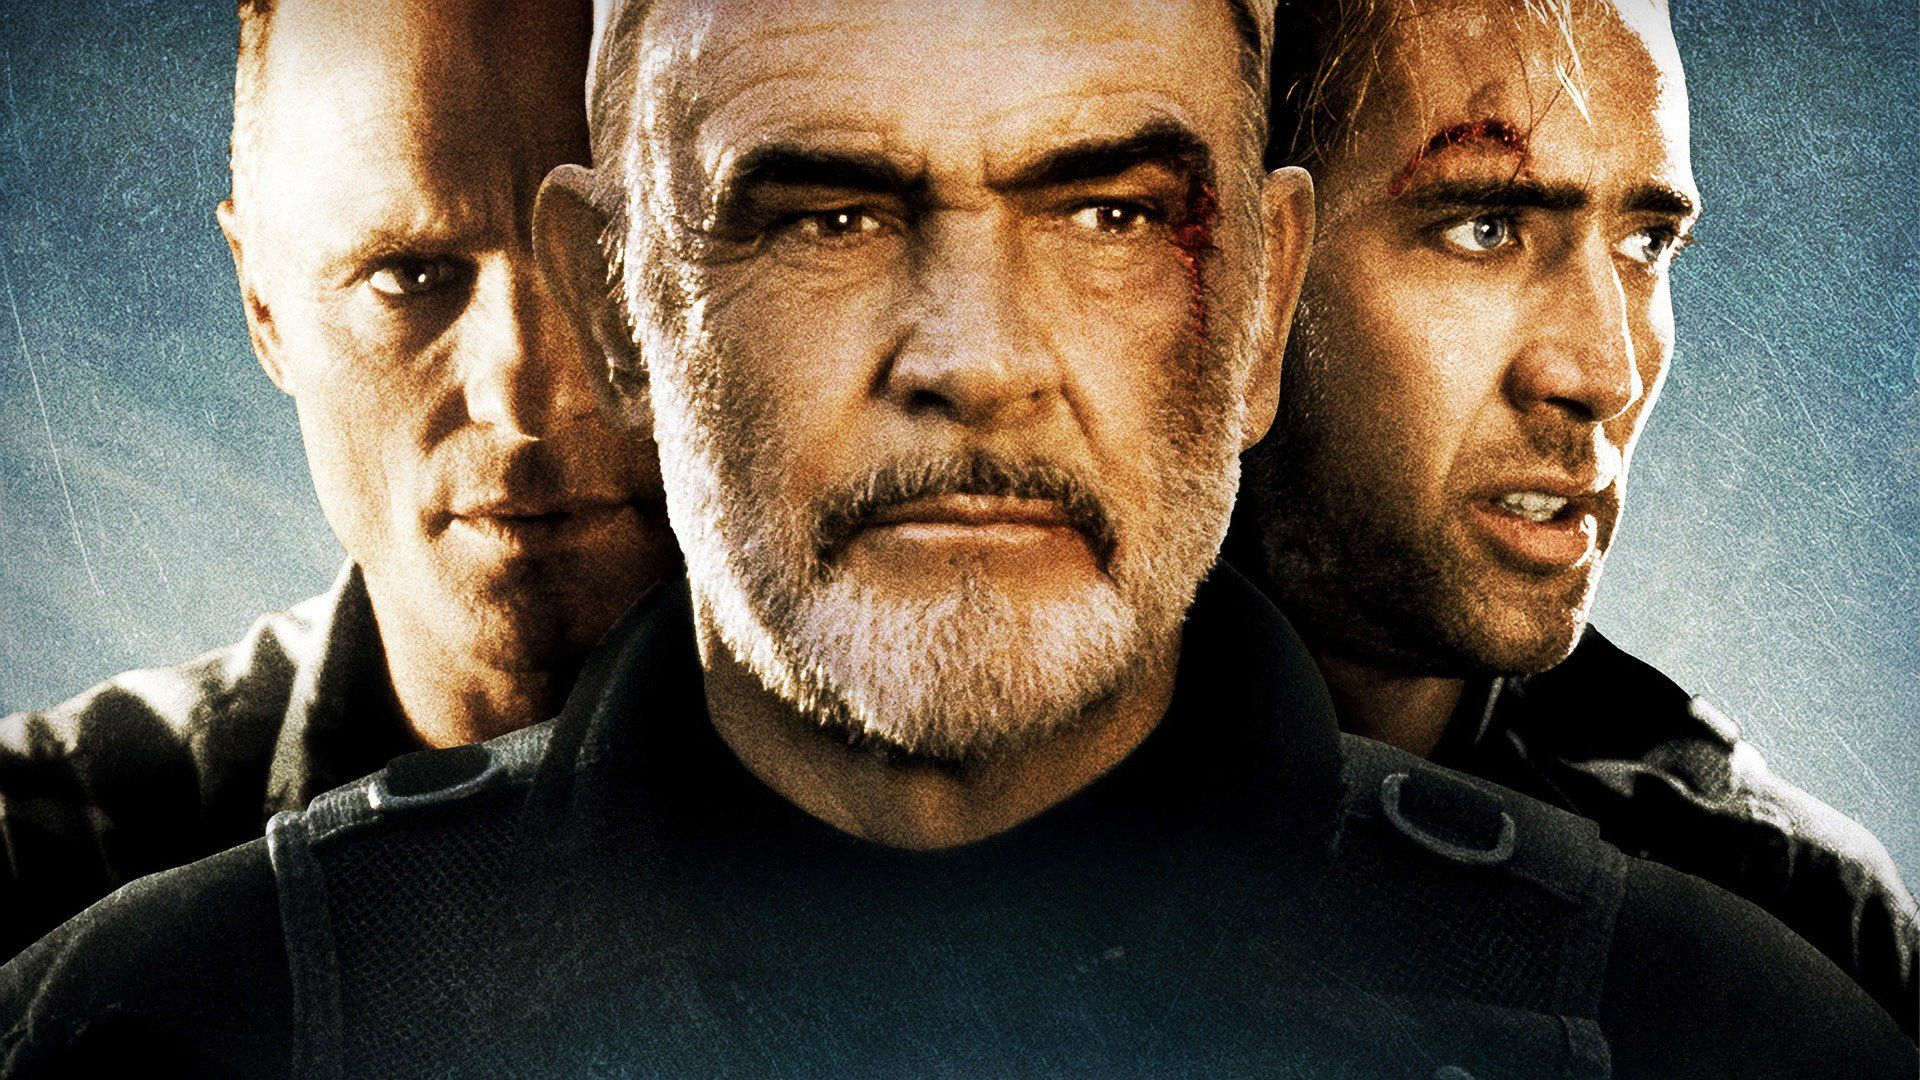 19 Sean Connery HD Wallpapers